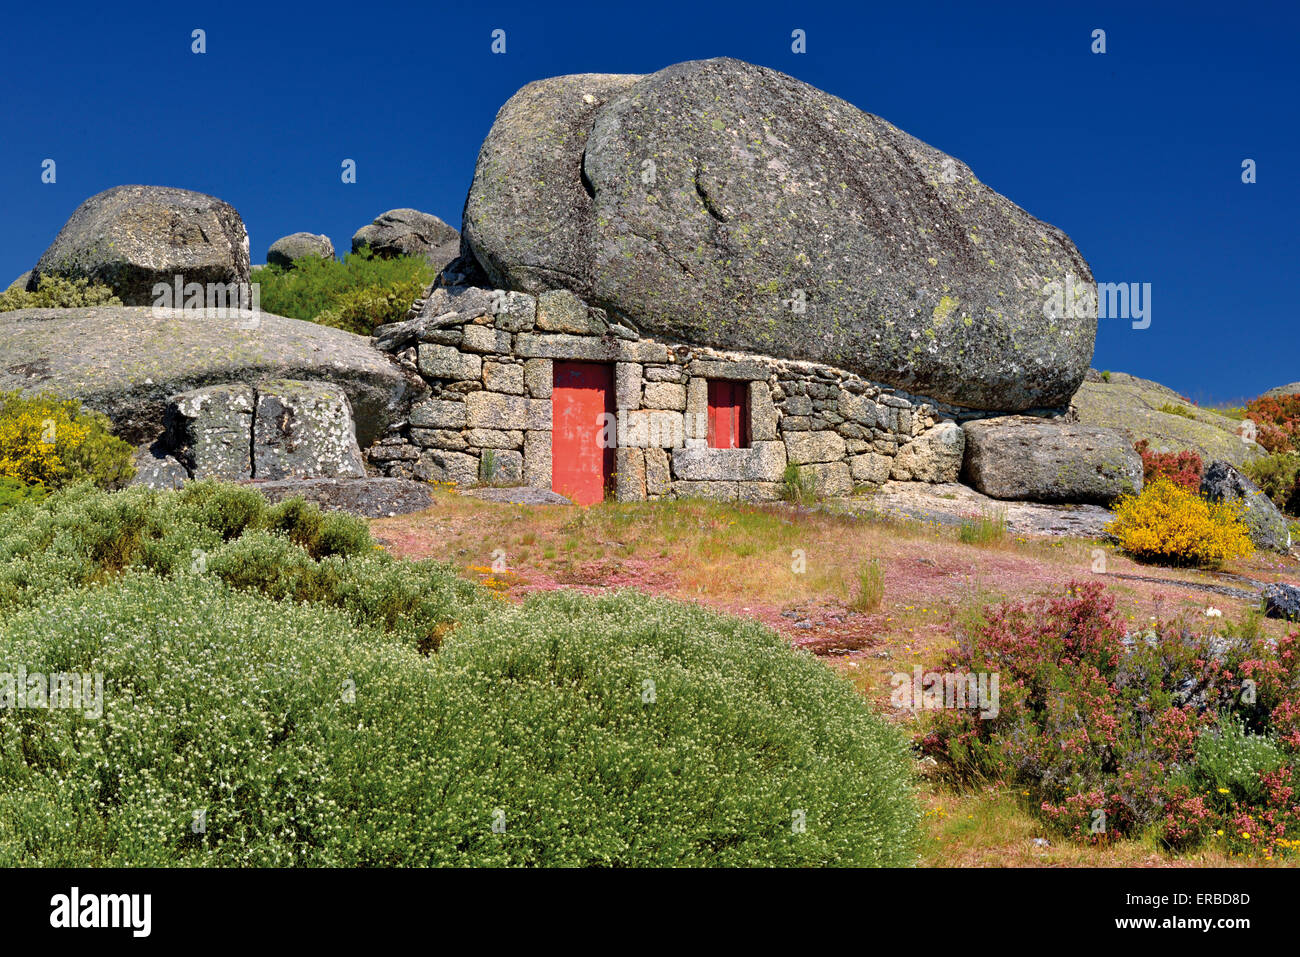 Portugal: Curious stone house under a huge rock in the typical mountain style of the Serra da Estrela - Stock Image